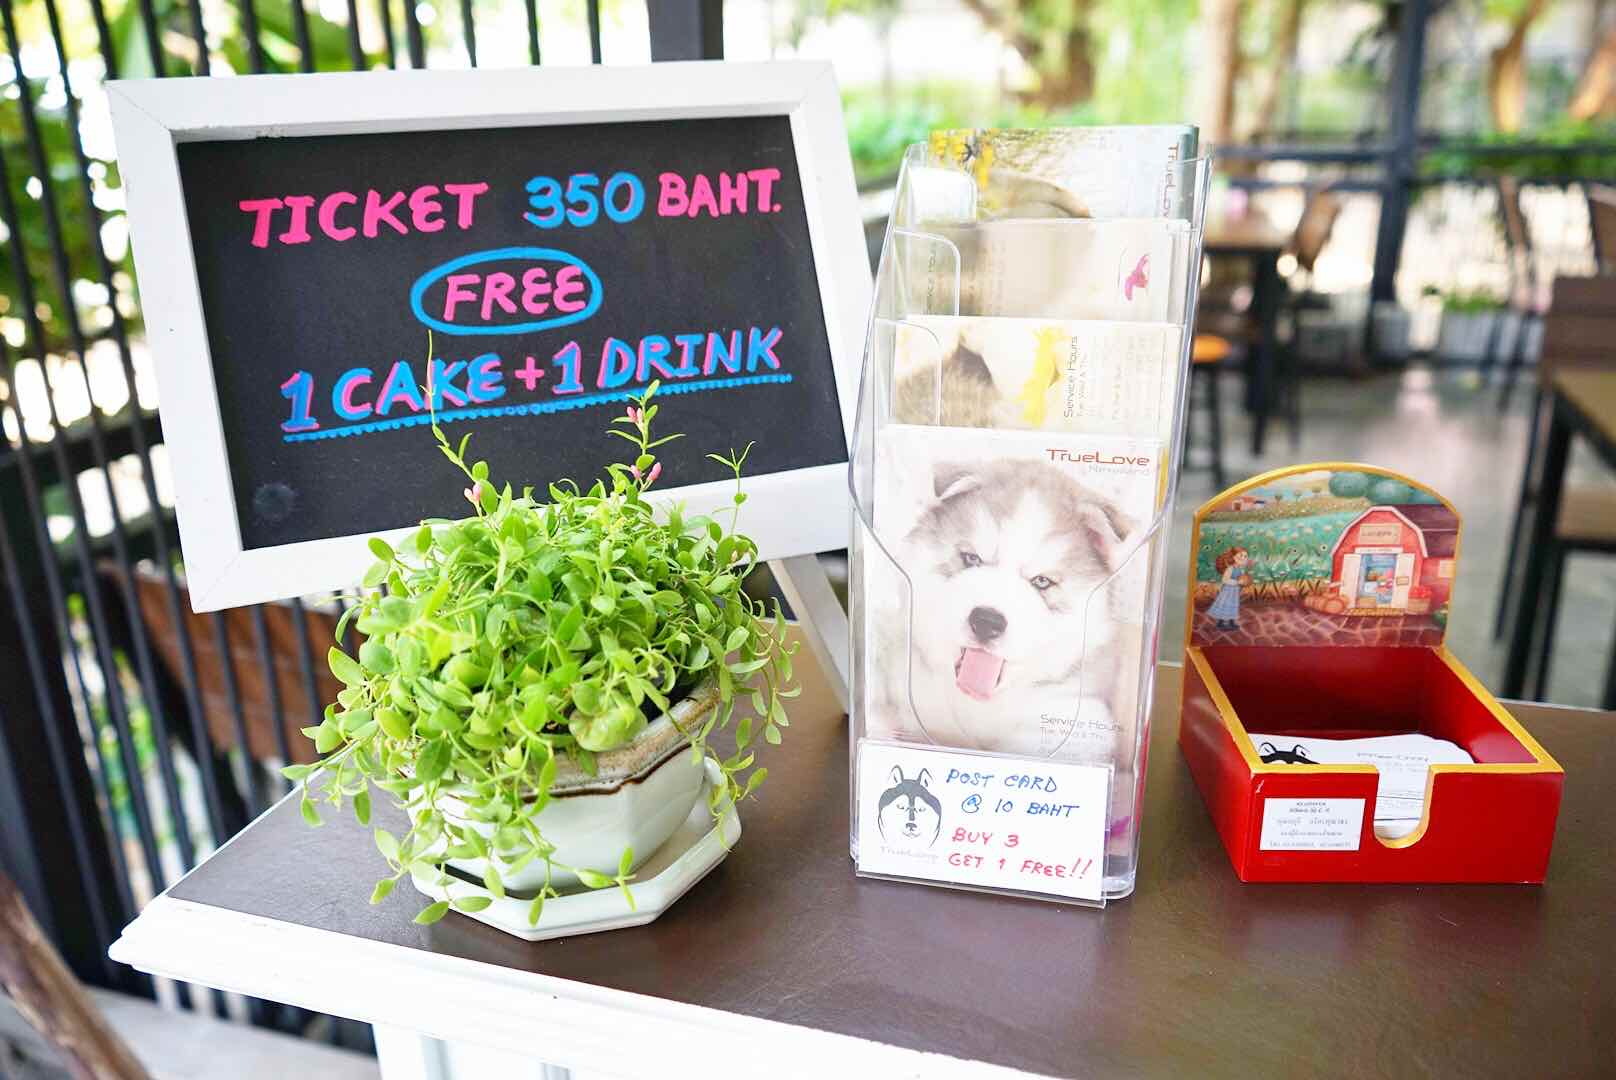 Payment Counter Neverland Siberian True Love Cafe, Bangkok - AspirantSG